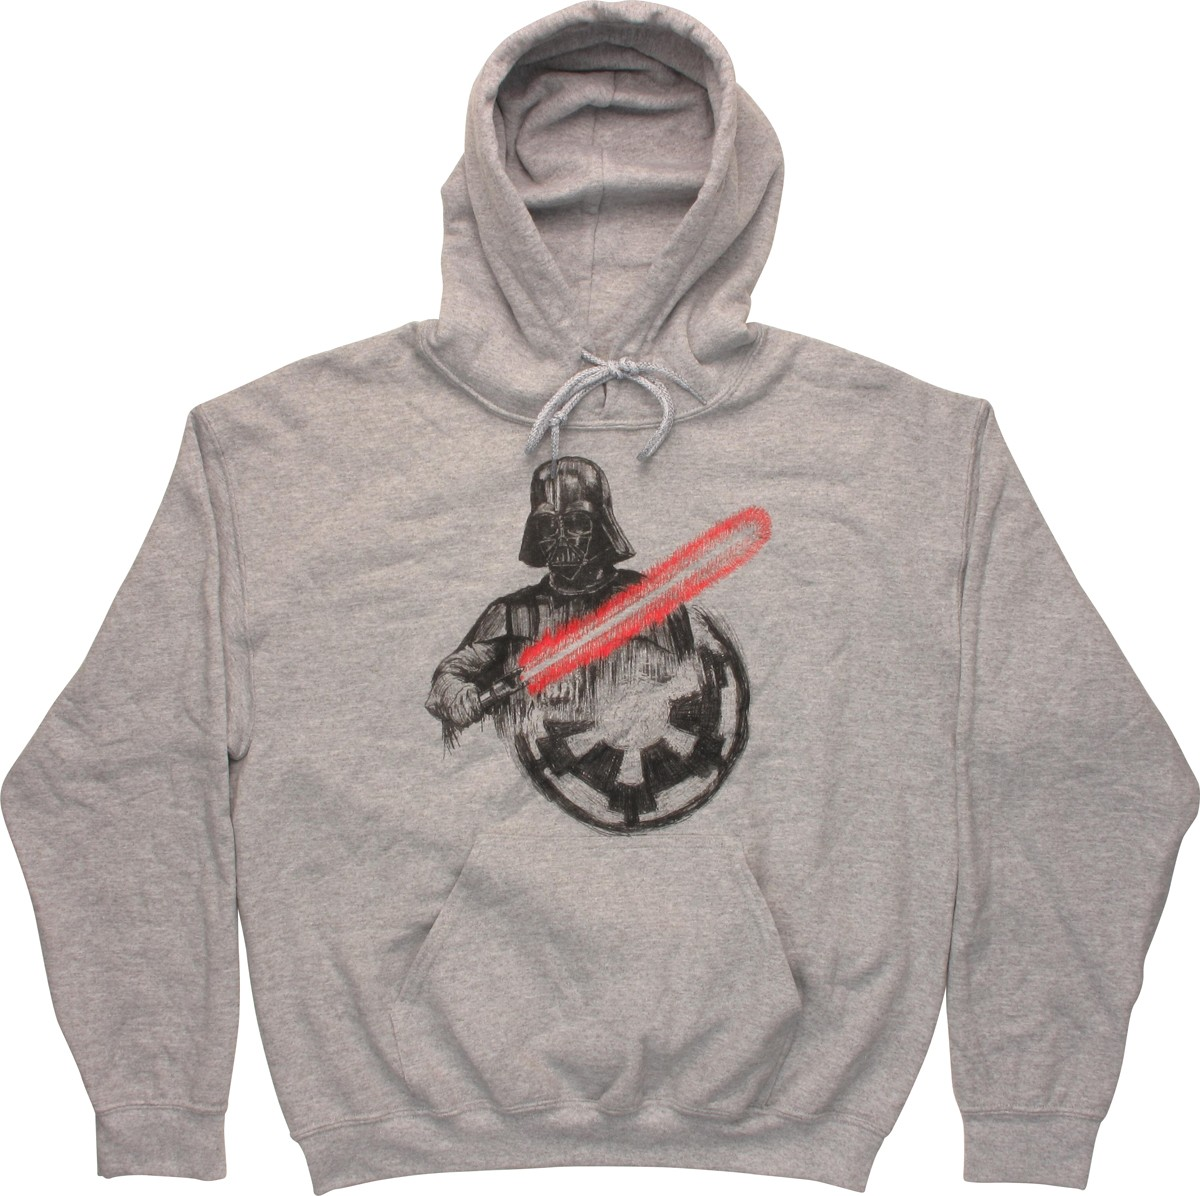 star wars vader imperial logo gray pullover hoodie. Black Bedroom Furniture Sets. Home Design Ideas